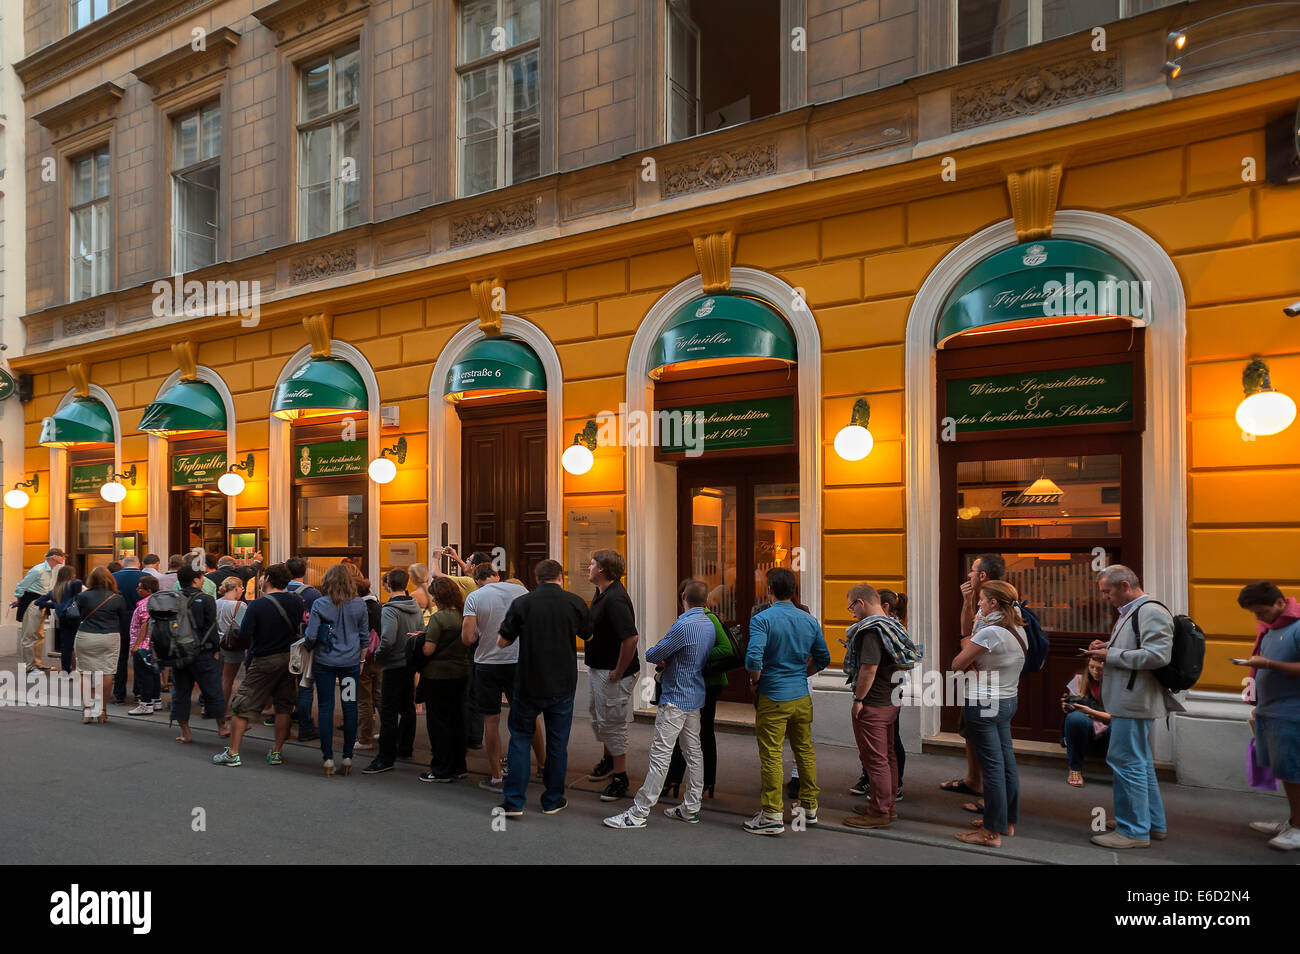 Tourists wait in long queues in front of the famous Schnitzel restaurant Figlmüller, Vienna, Vienna State, - Stock Image